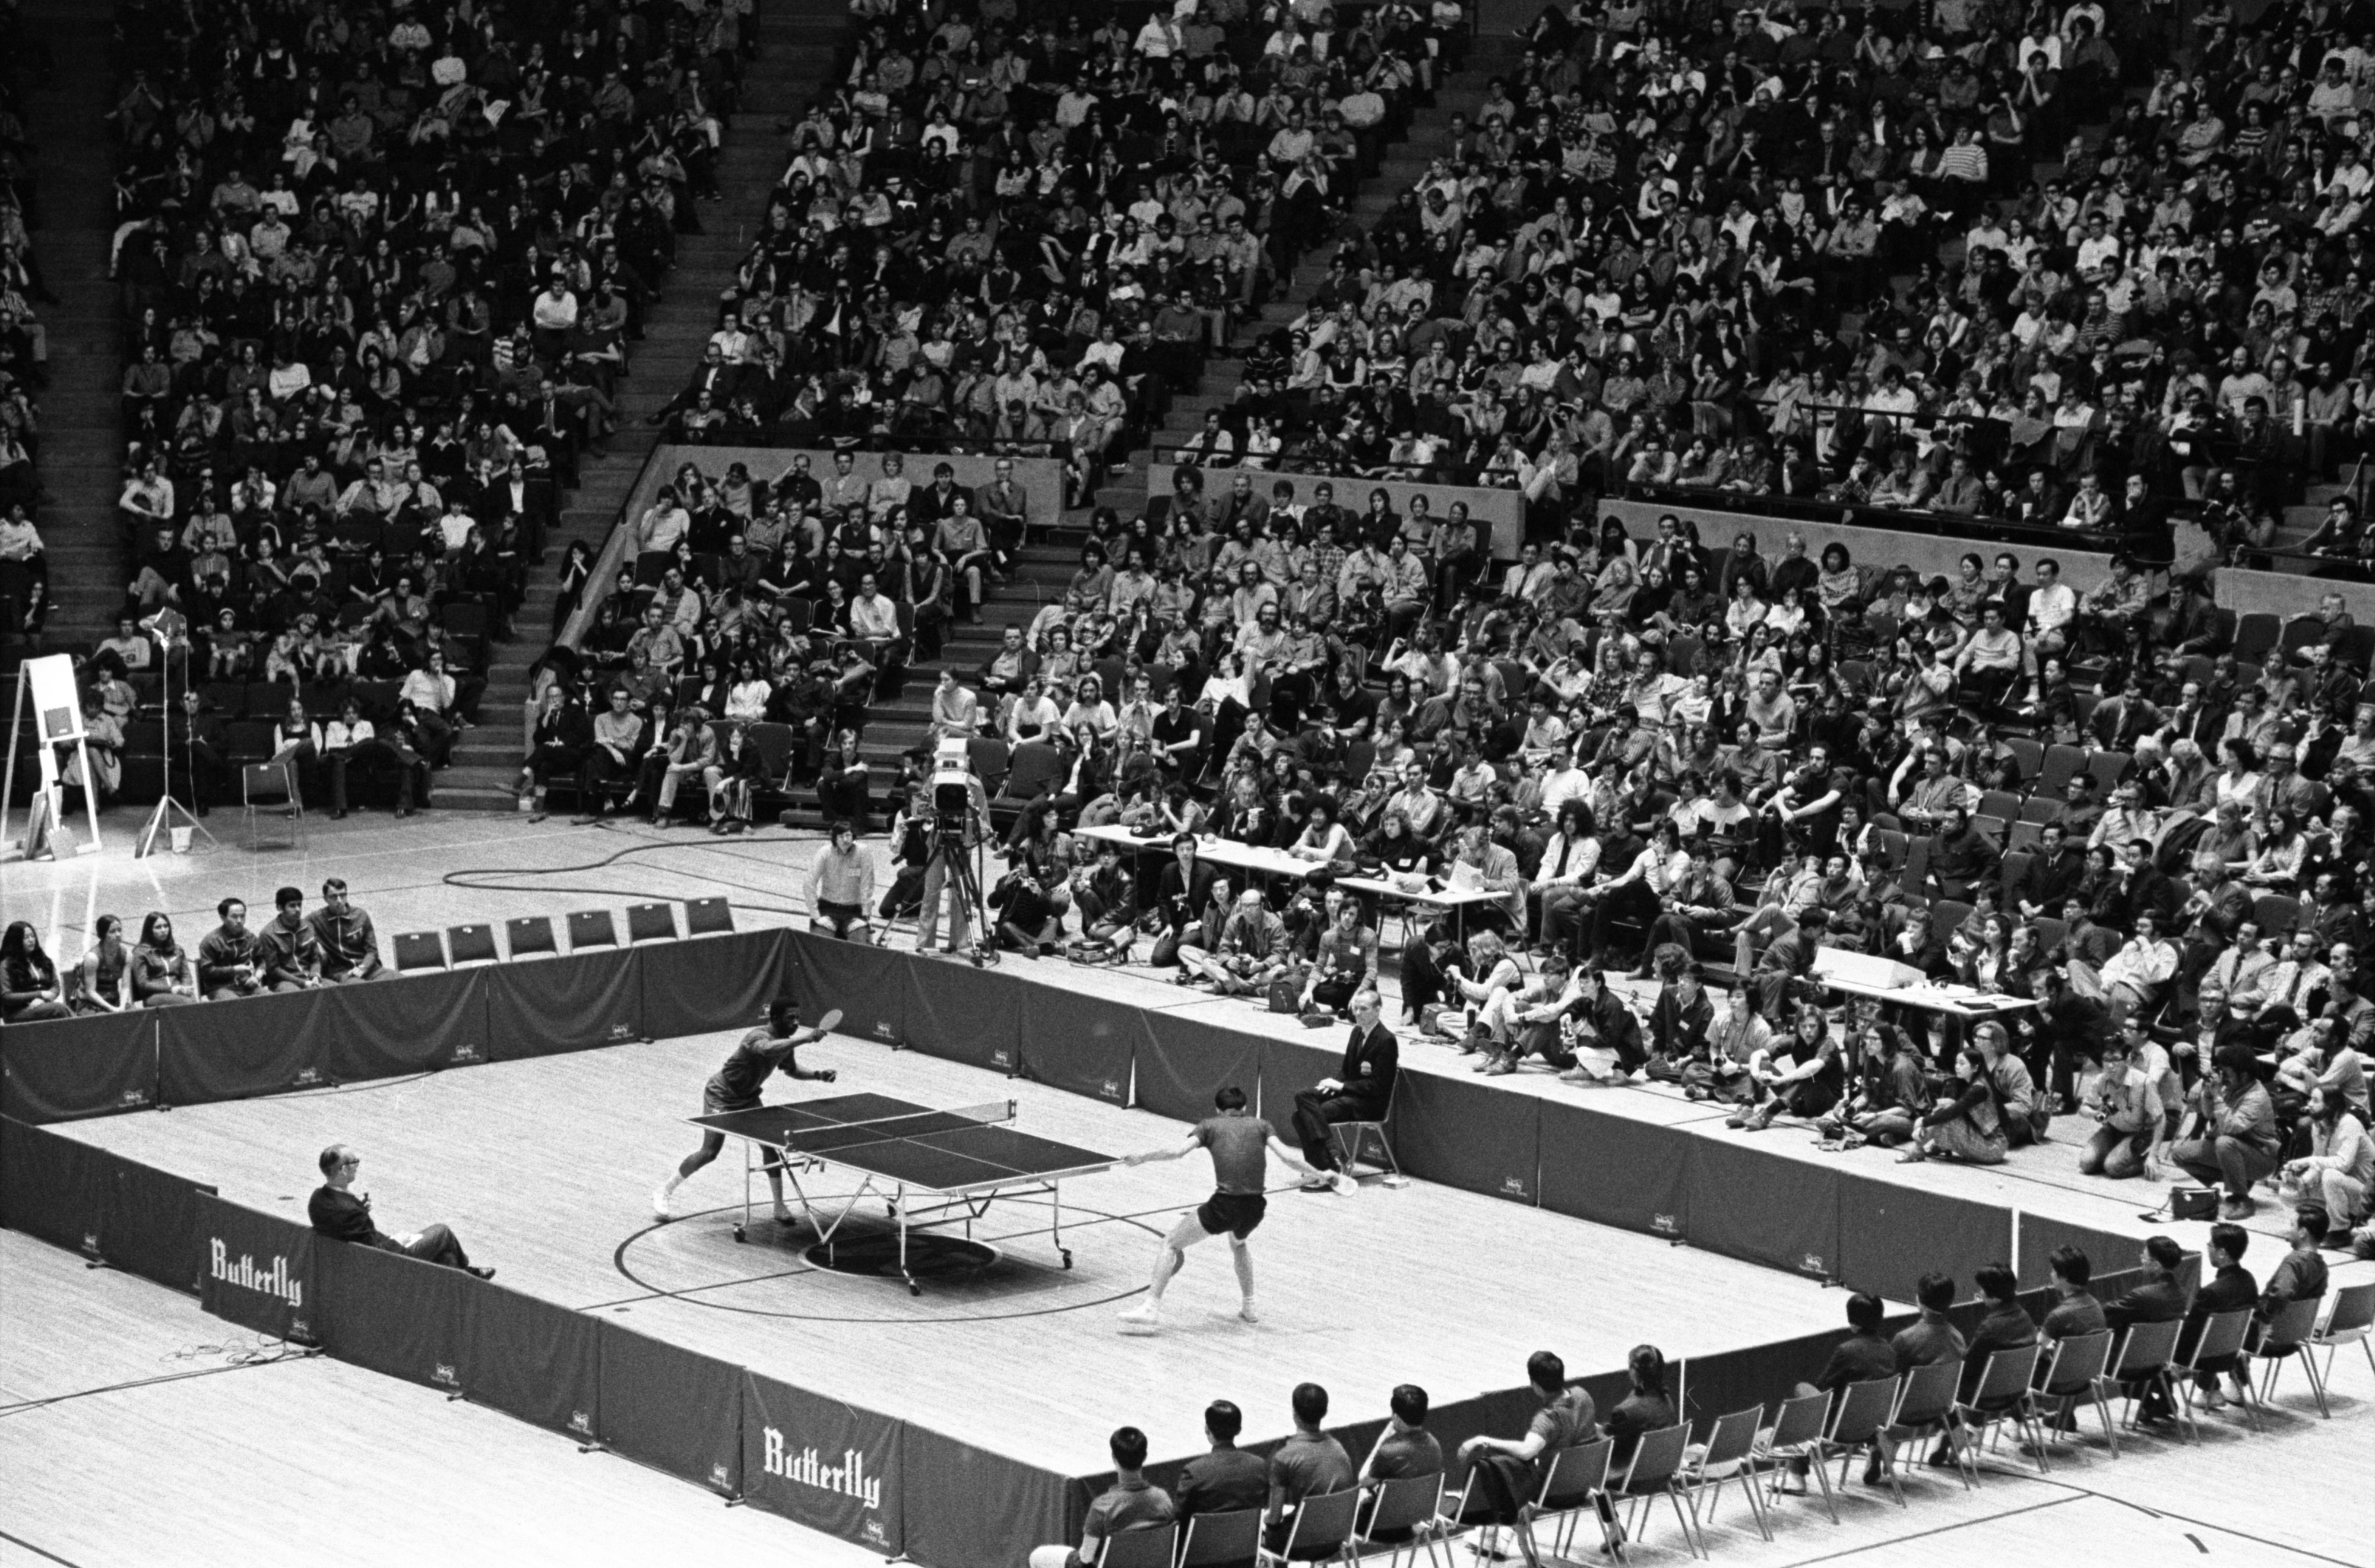 Ping-Pong Exhibition Match At Crisler Arena Between American & Chinese Players, April 1972 image